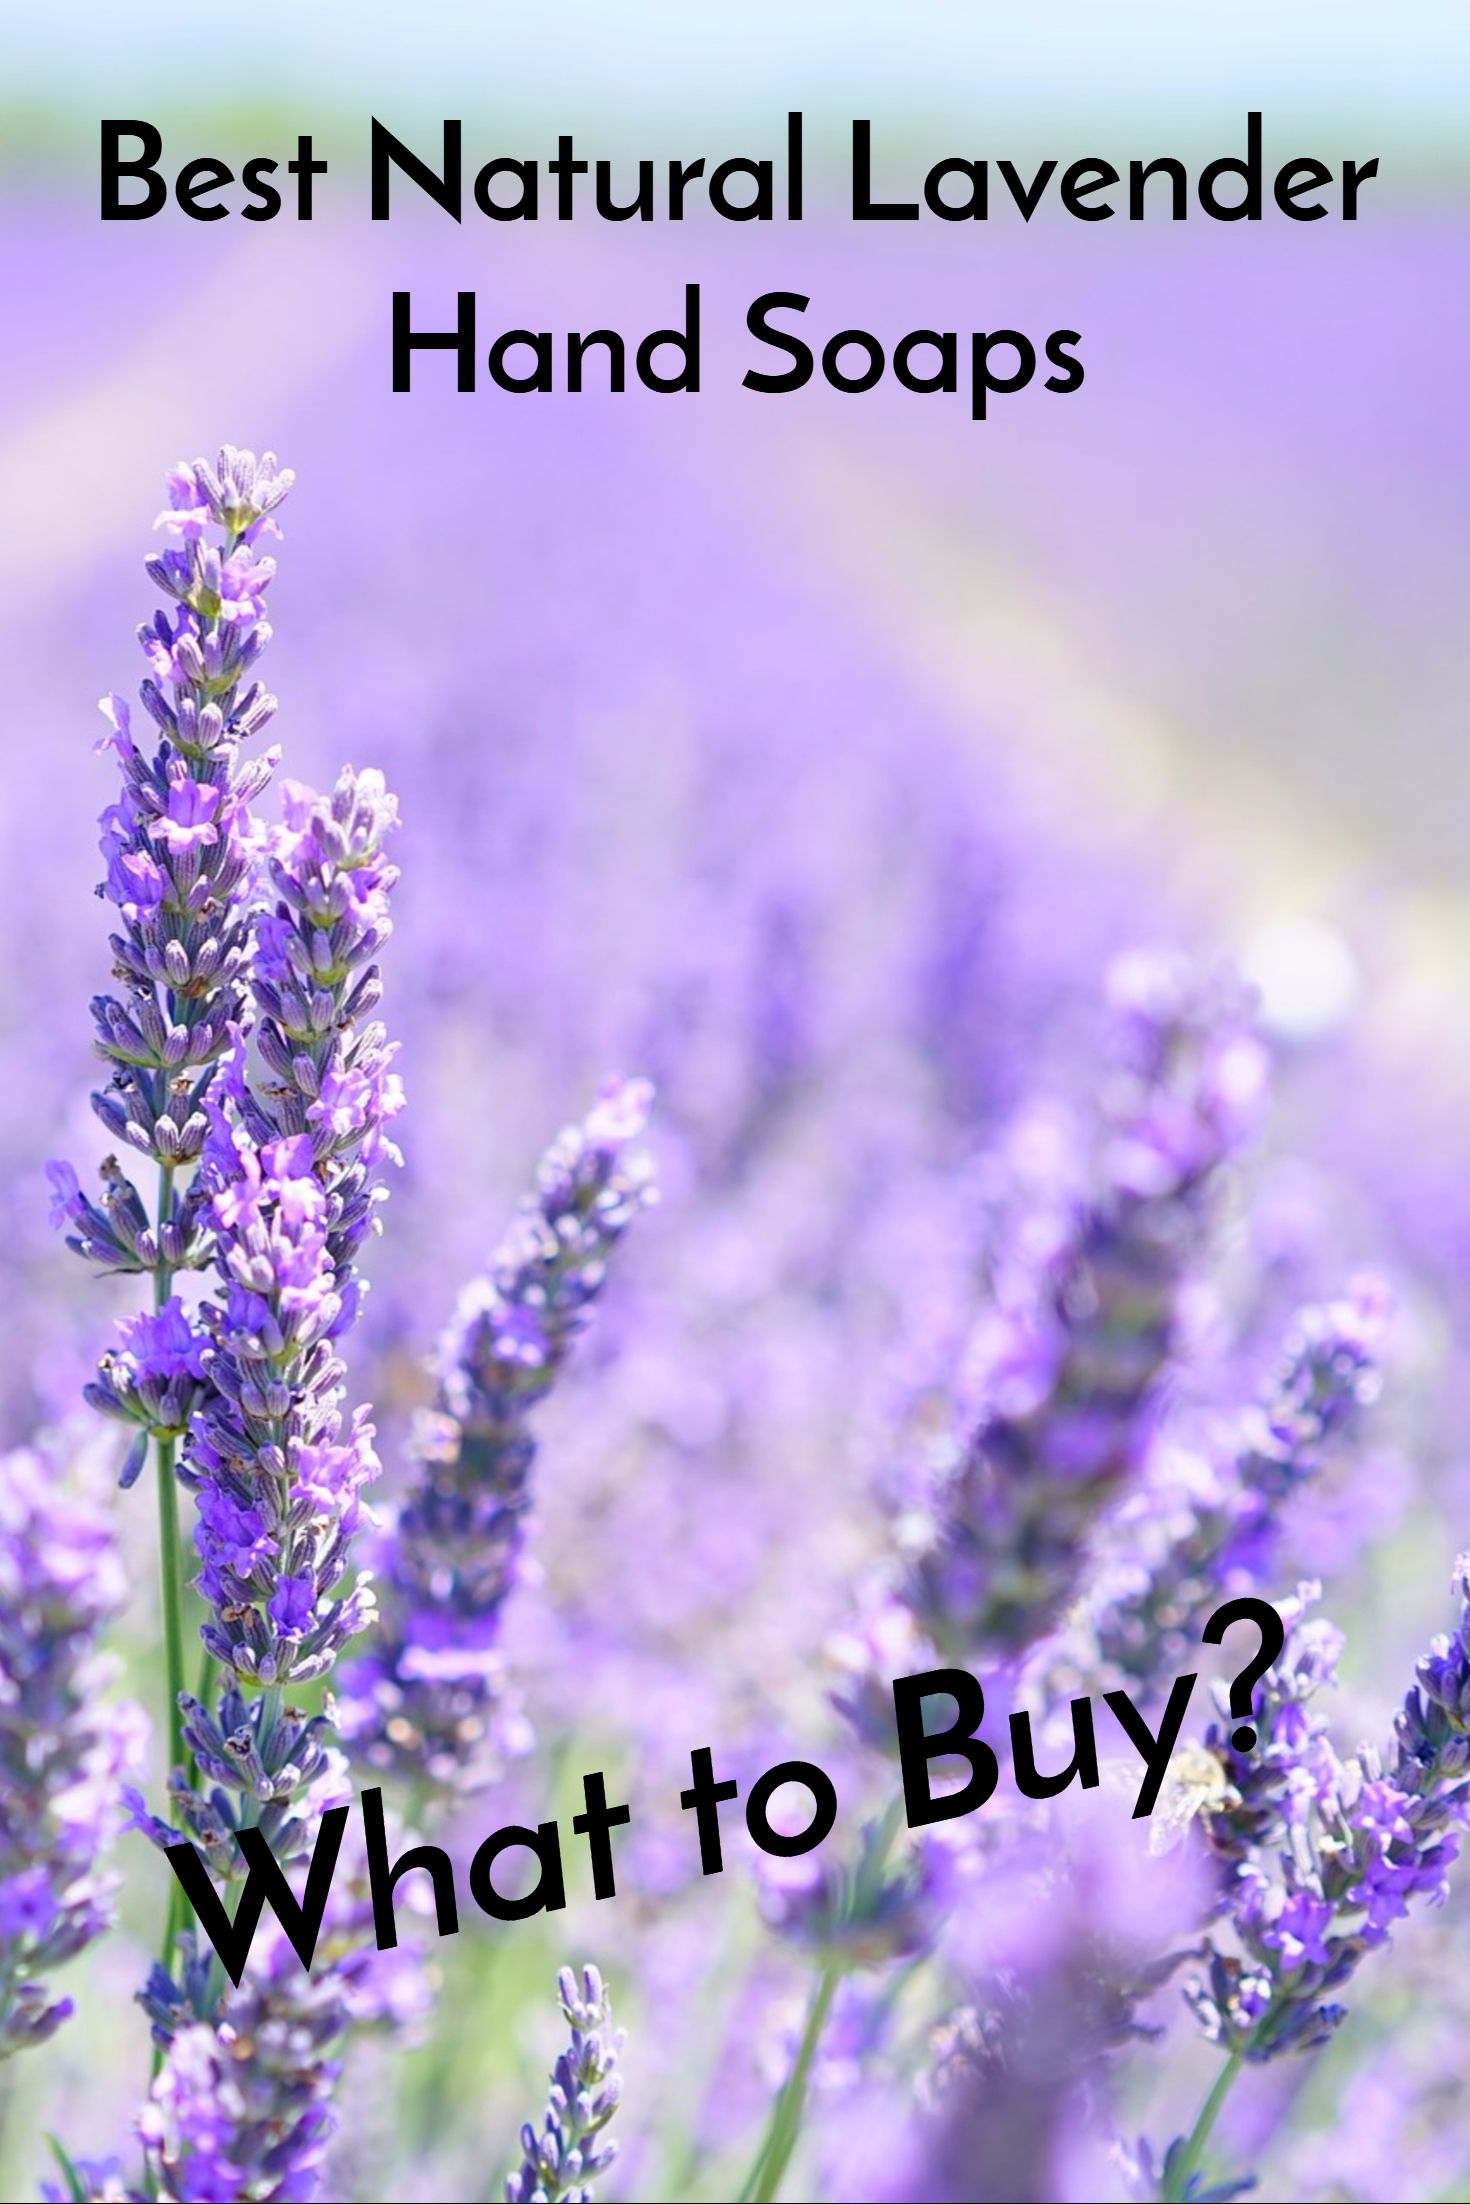 Whether a fan of liquid, foam or a brand such as Jason, Method or Mrs. Meyers, these lavender soaps will sweet you off your feet.